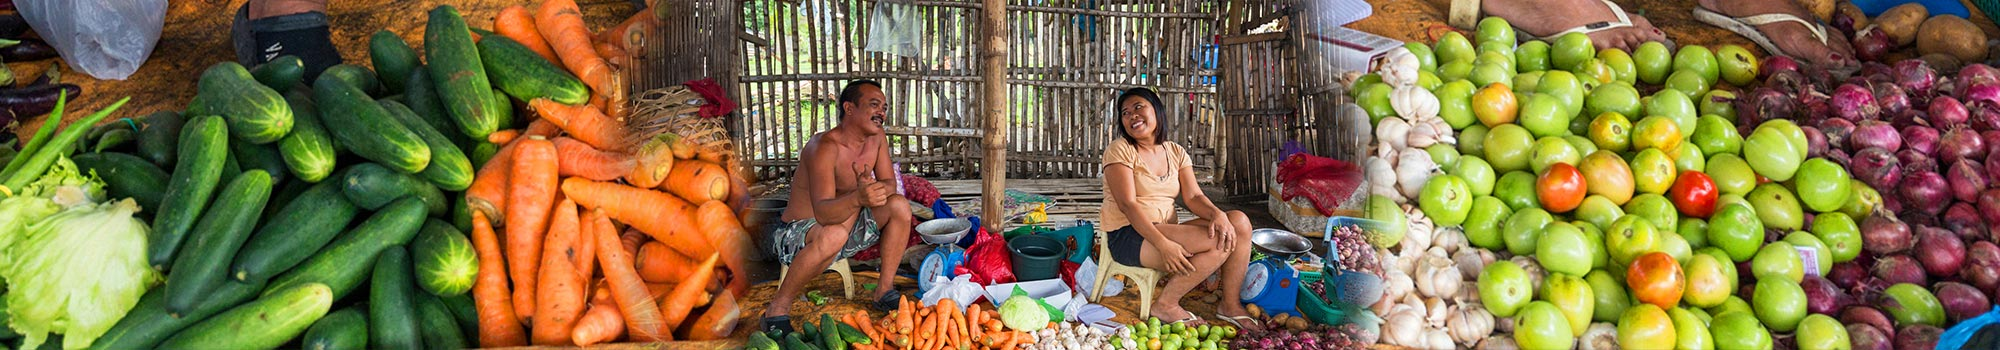 Visit Malatapay market in Zamboanguita during your stay at Atmosphere Resort in Dumaguete, Philippines